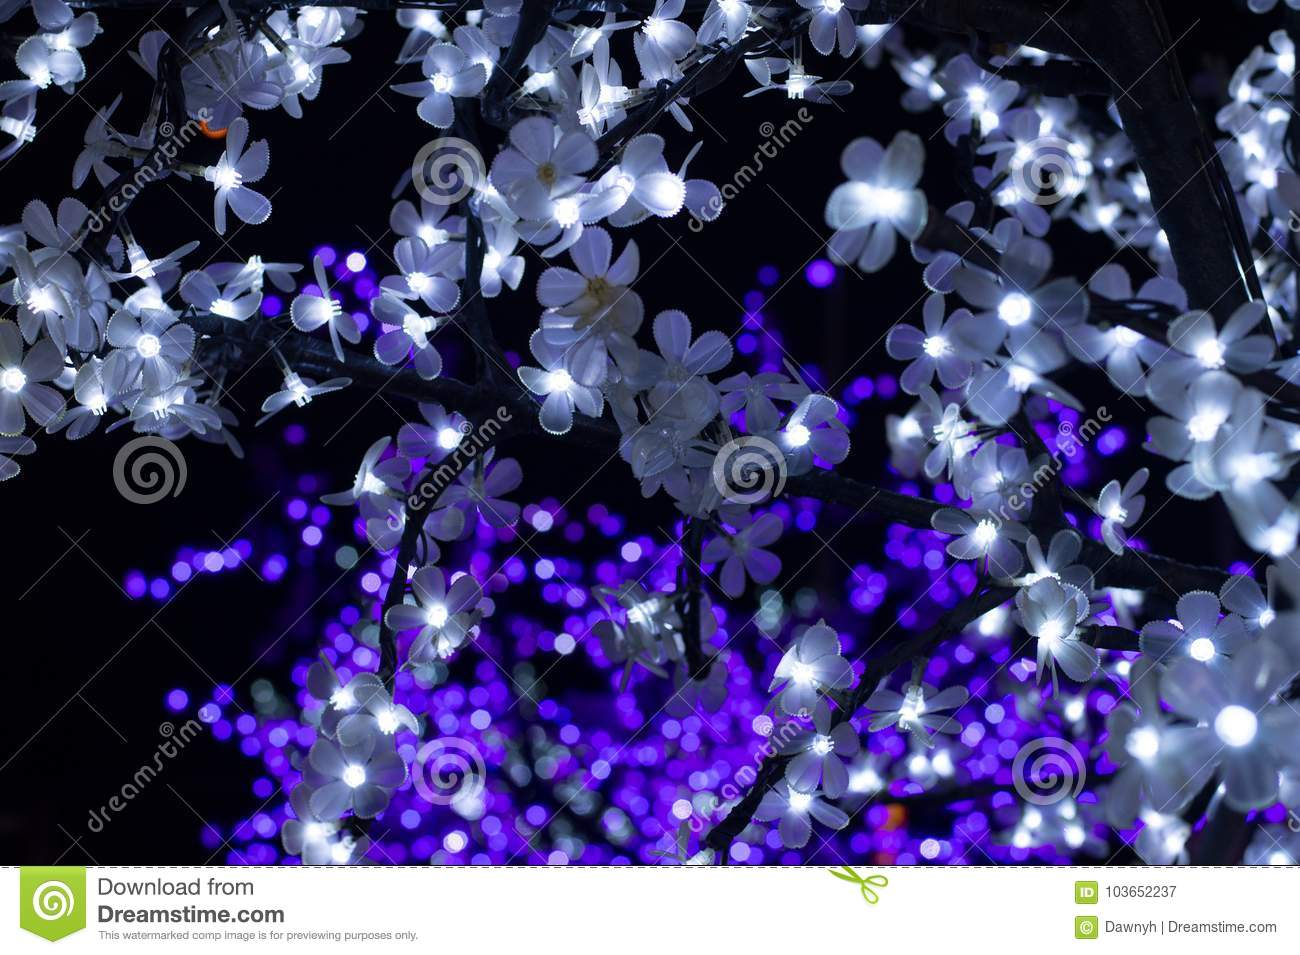 Pink and white flower lights christmas lights stock image image of pink and white flower lights christmas lights mightylinksfo